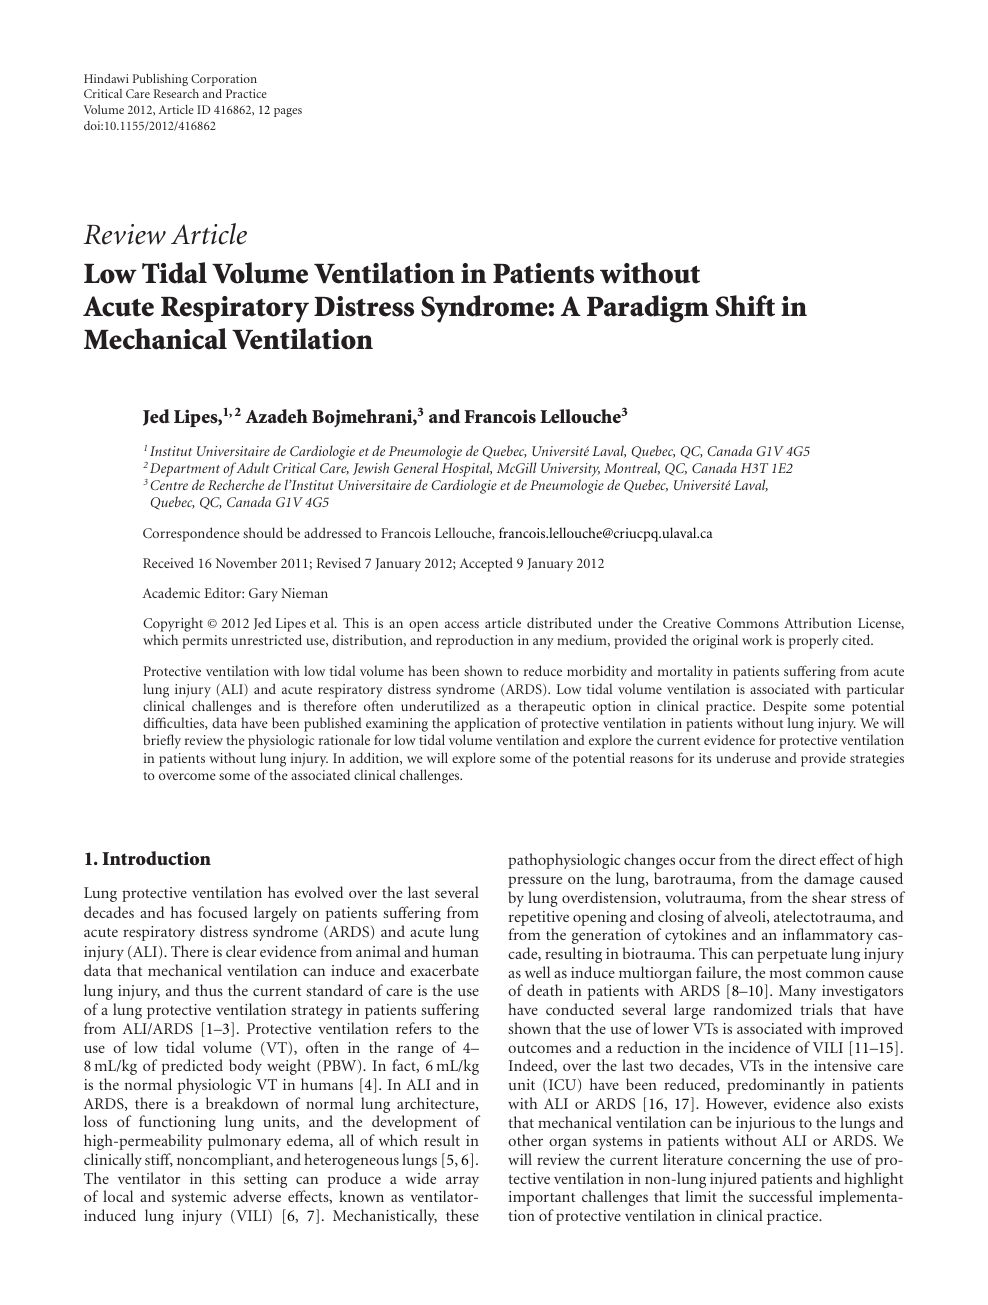 Low Tidal Volume Ventilation in Patients without Acute Respiratory